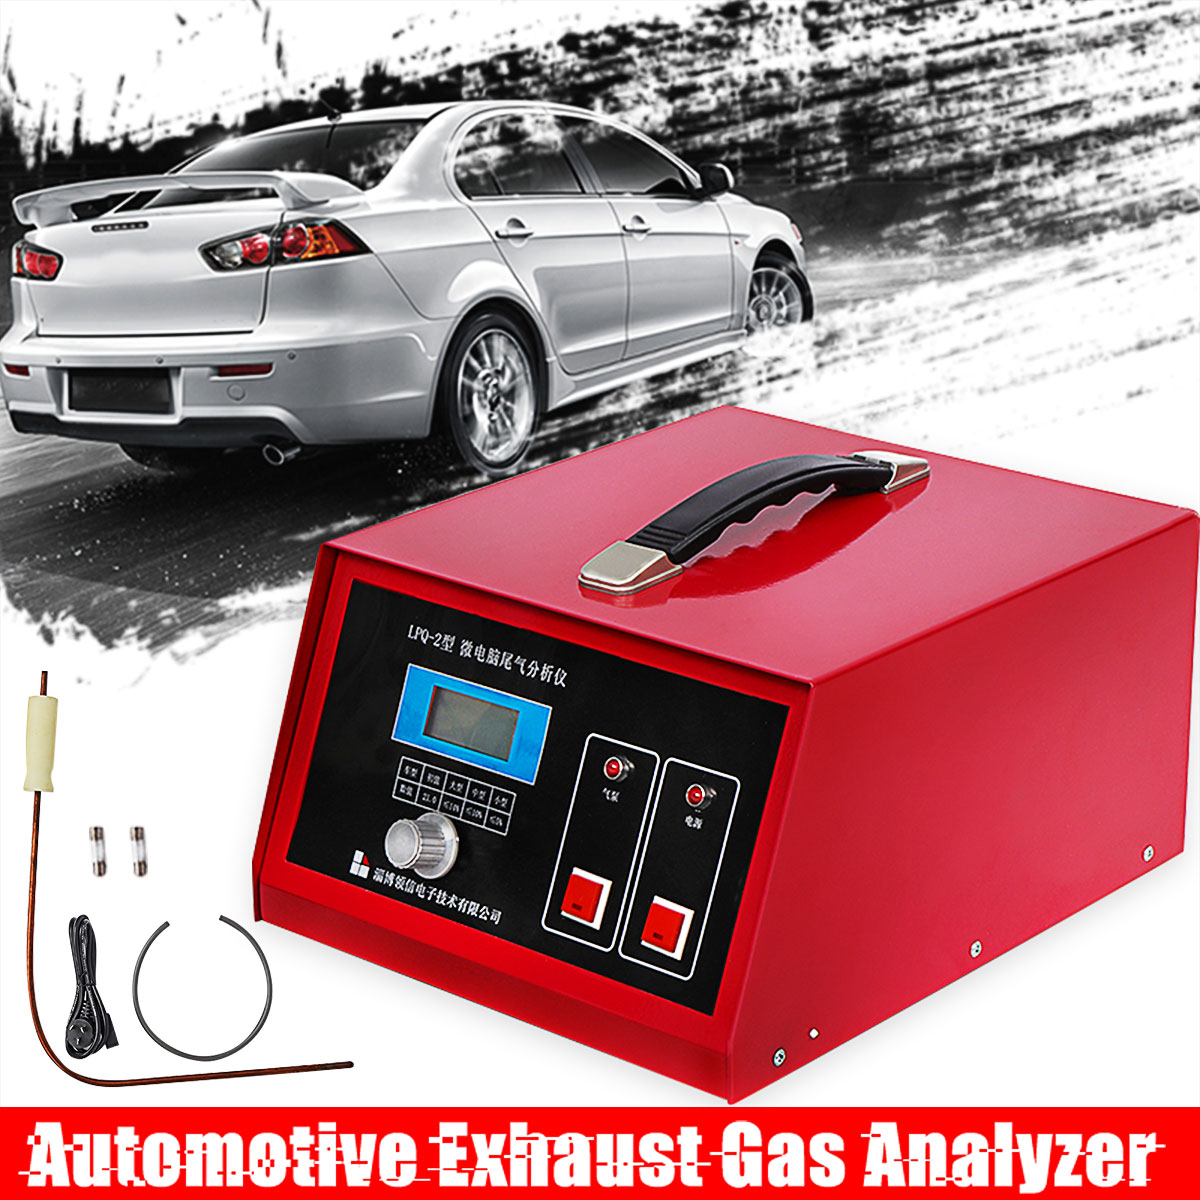 220V Pm2.5 Detector Automotive Vehicle Exhaust Gas Analyzer  Vehicle Emission Gas Analyzer Tail Gas Oxygen Conten Detector